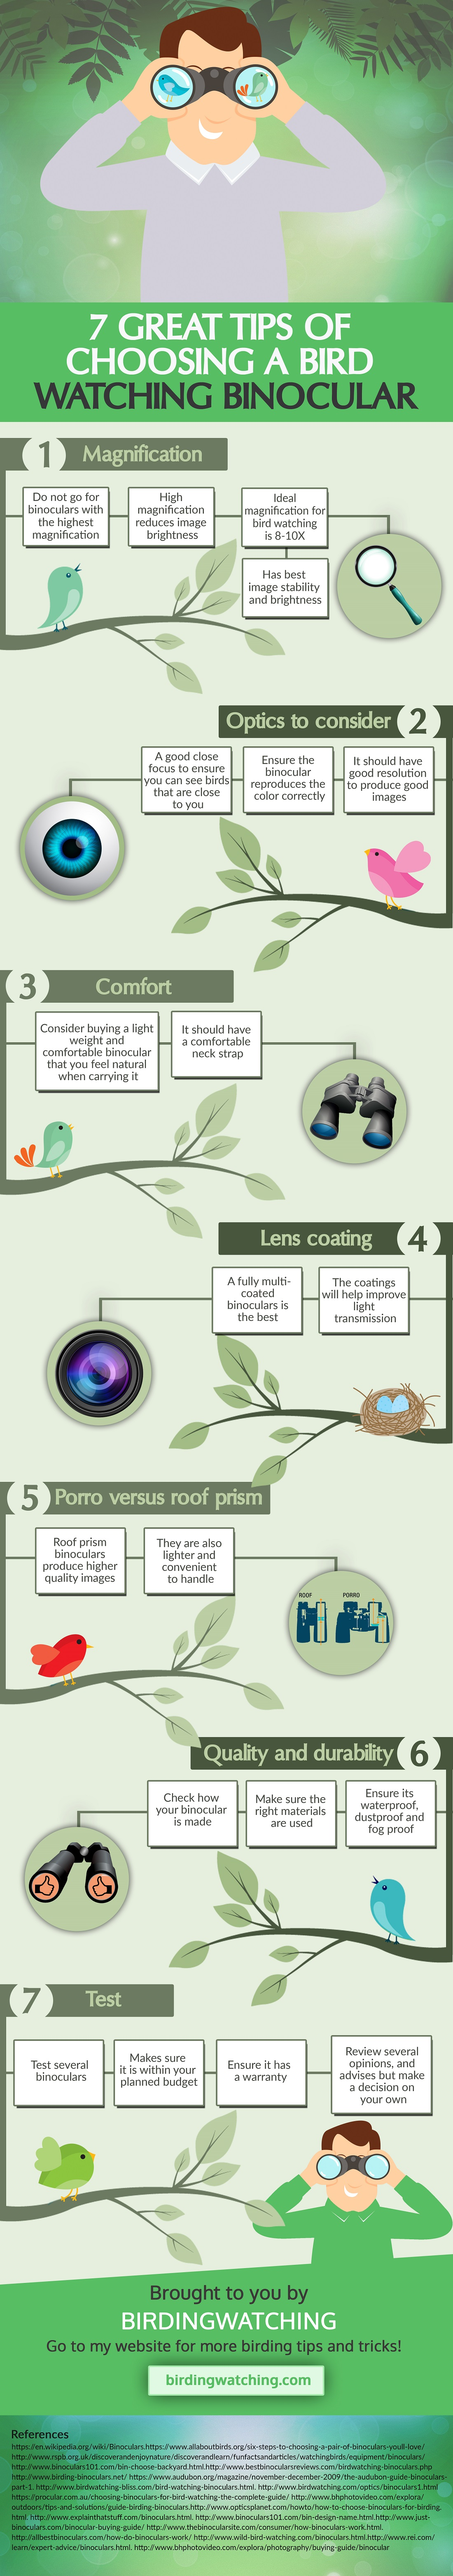 Bird Watching Binoculars - Infographic